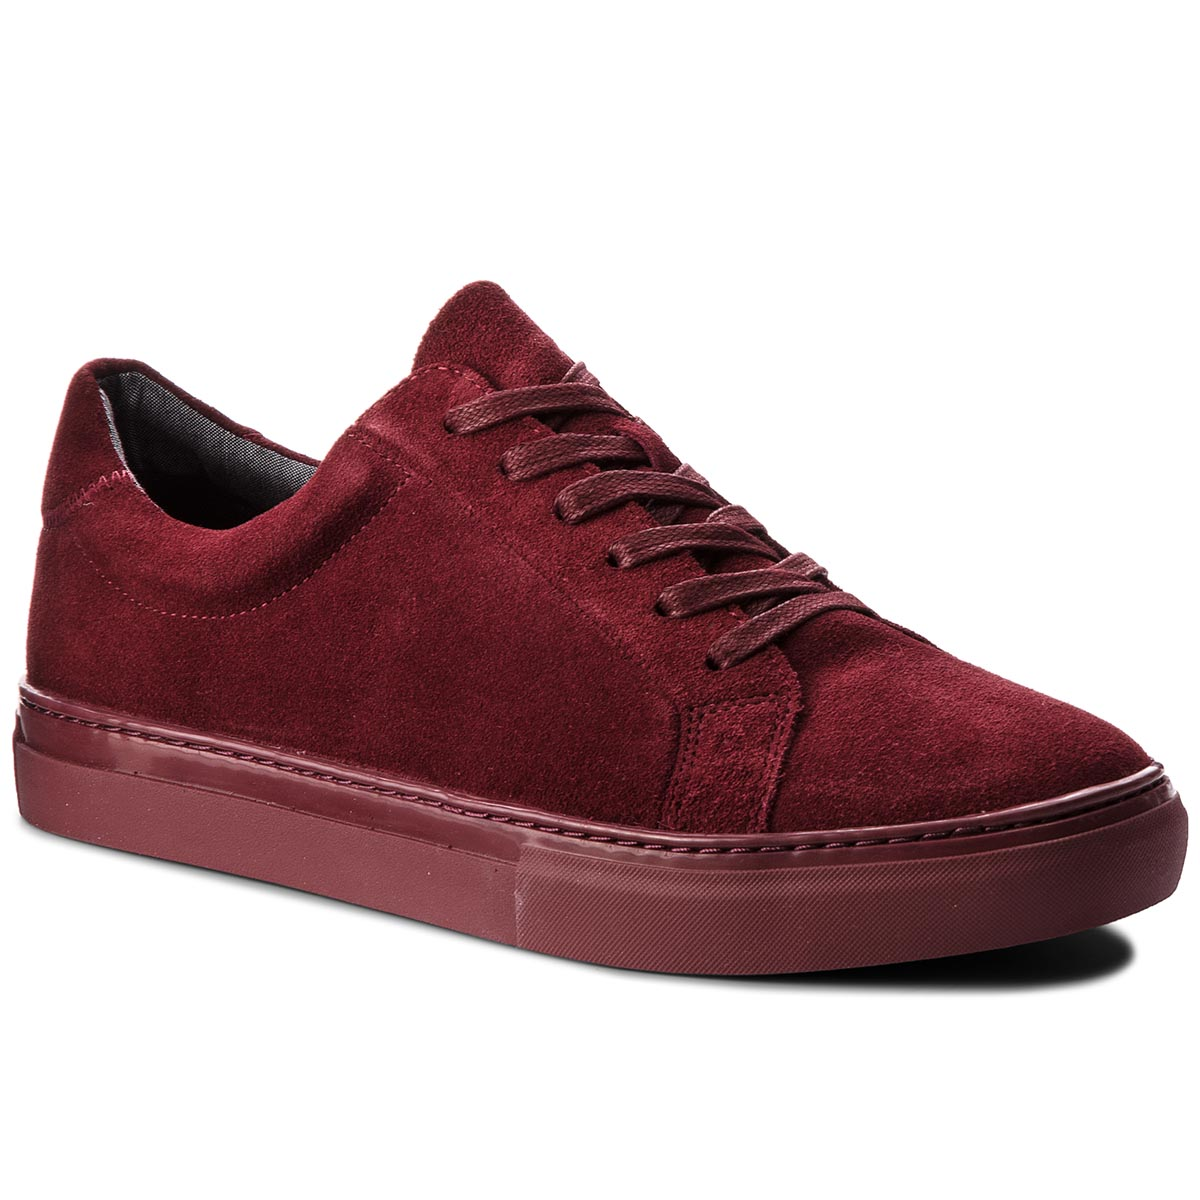 Sneakers VAGABOND - Paul 4483-040-38 Wine